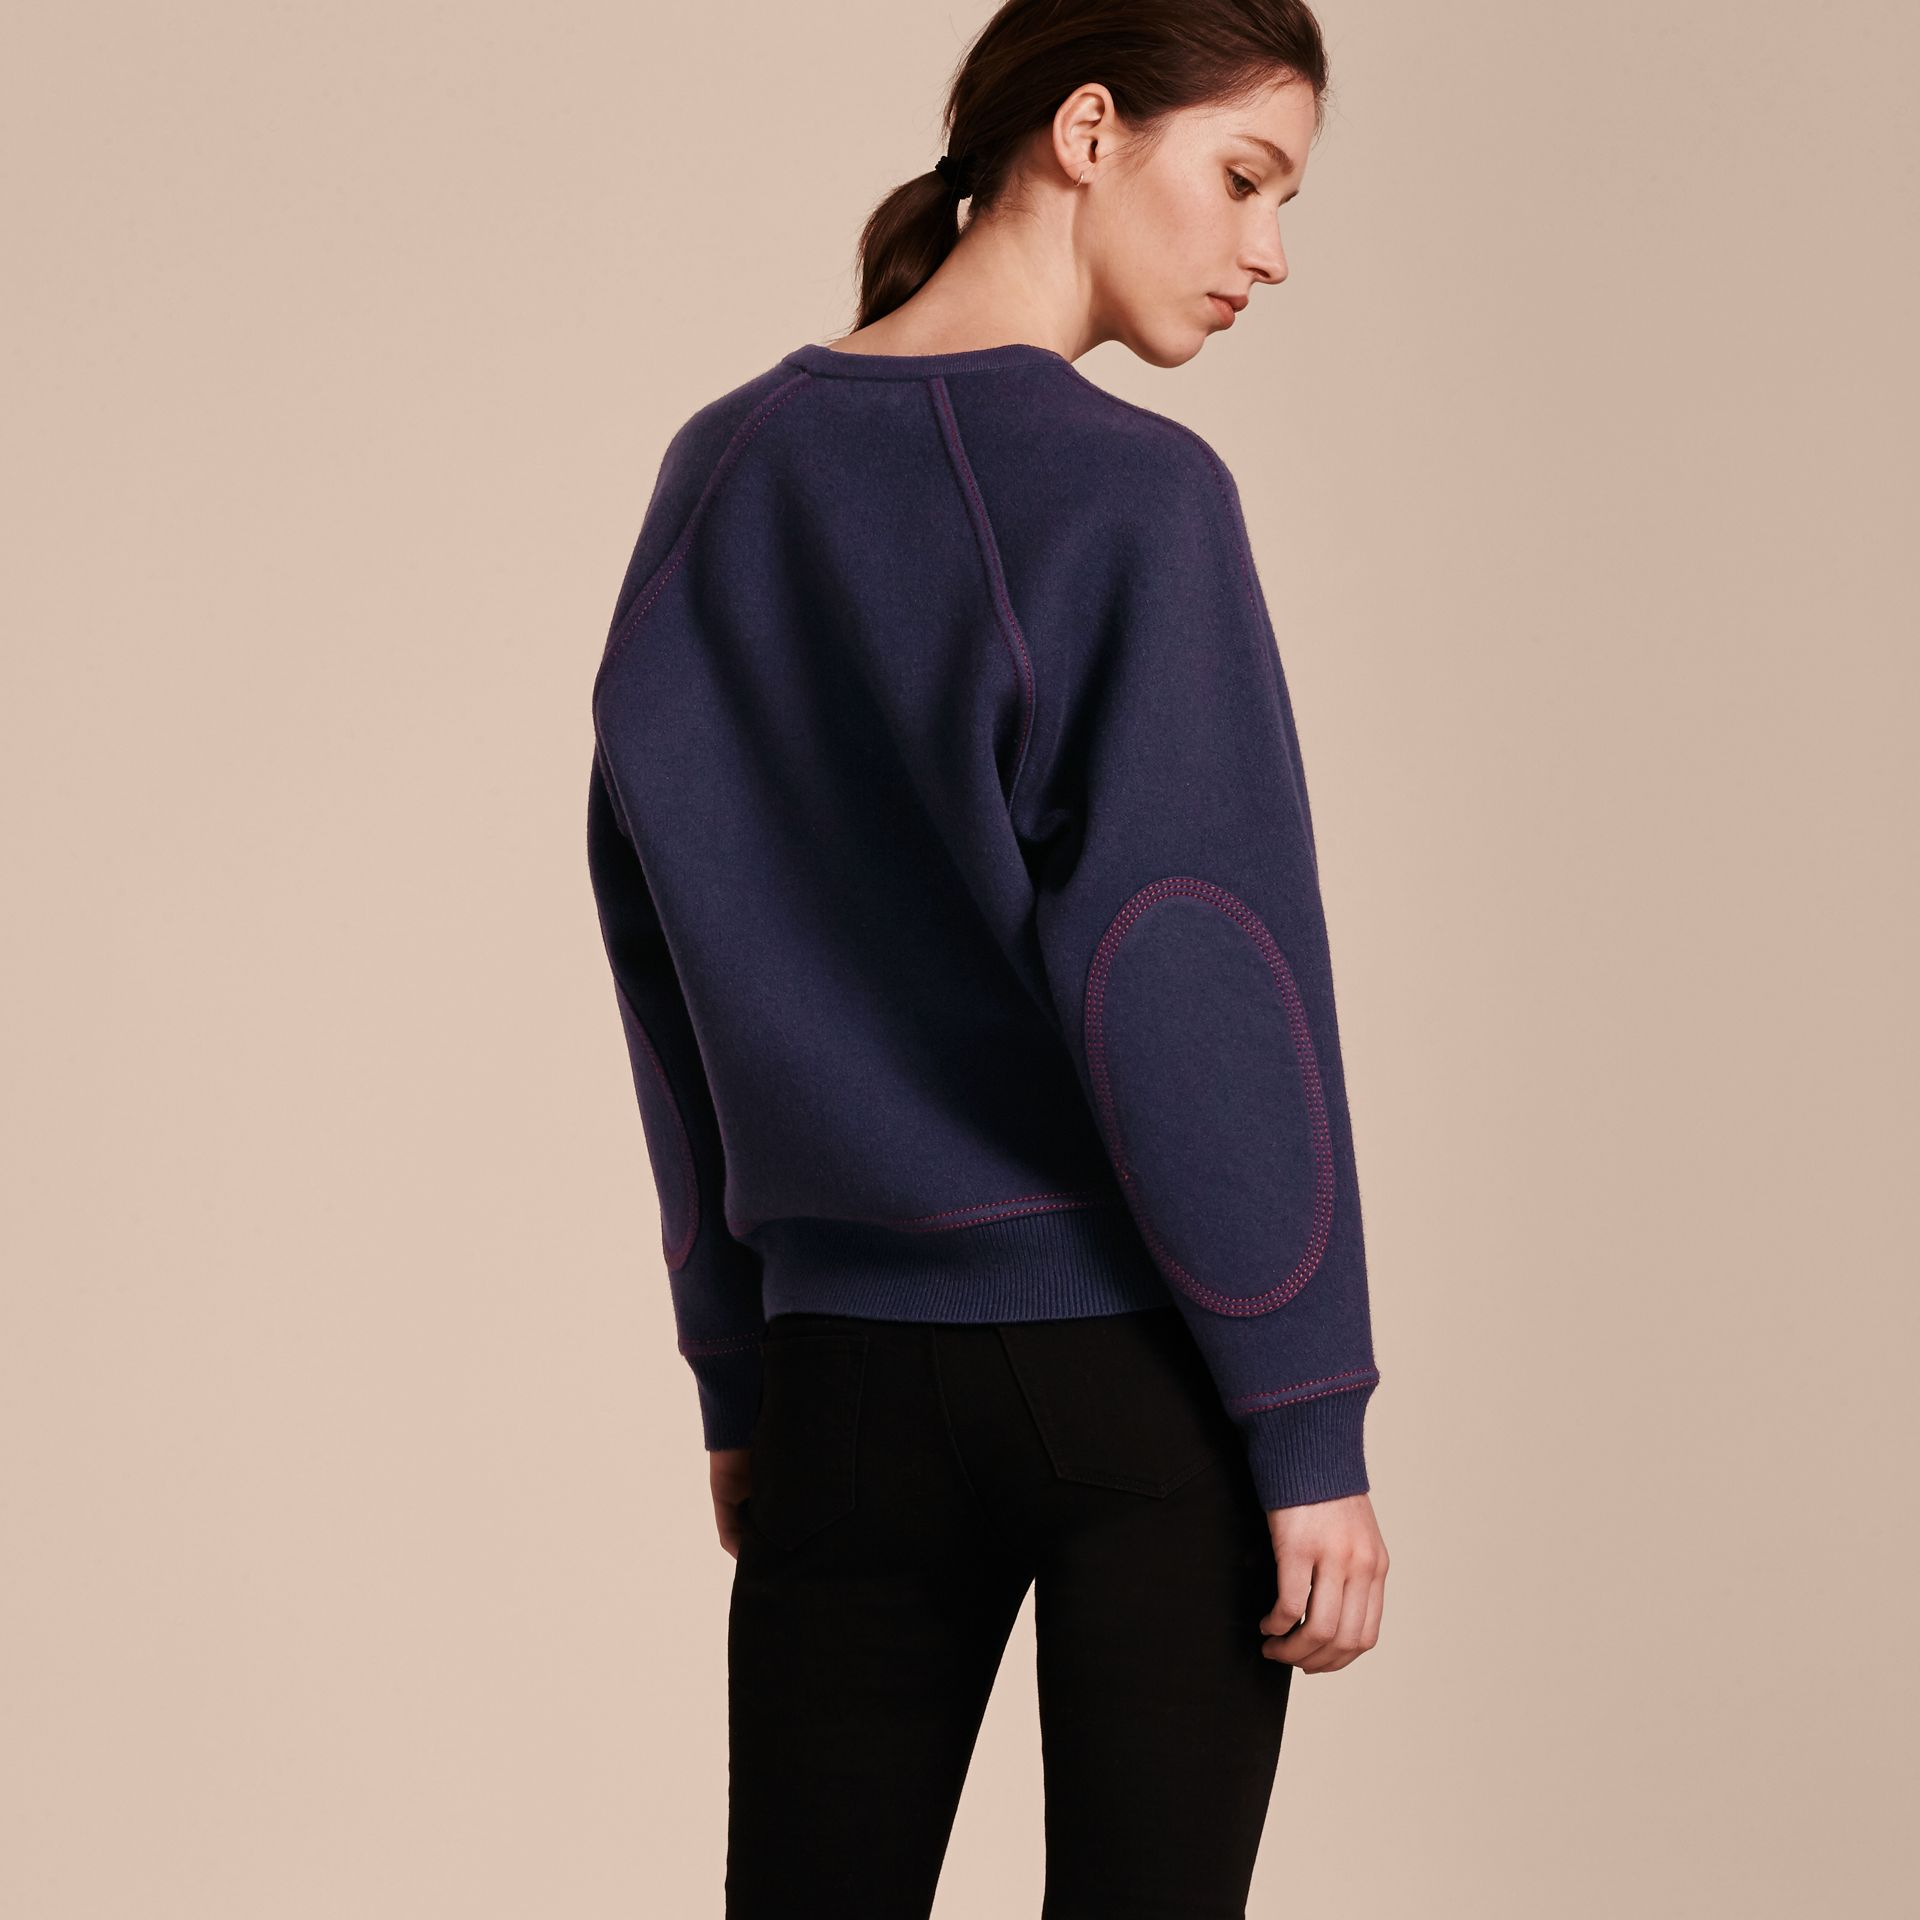 Topstitch Detail Wool Cashmere Blend Sweater in Navy - Women | Burberry United States - gallery image 3